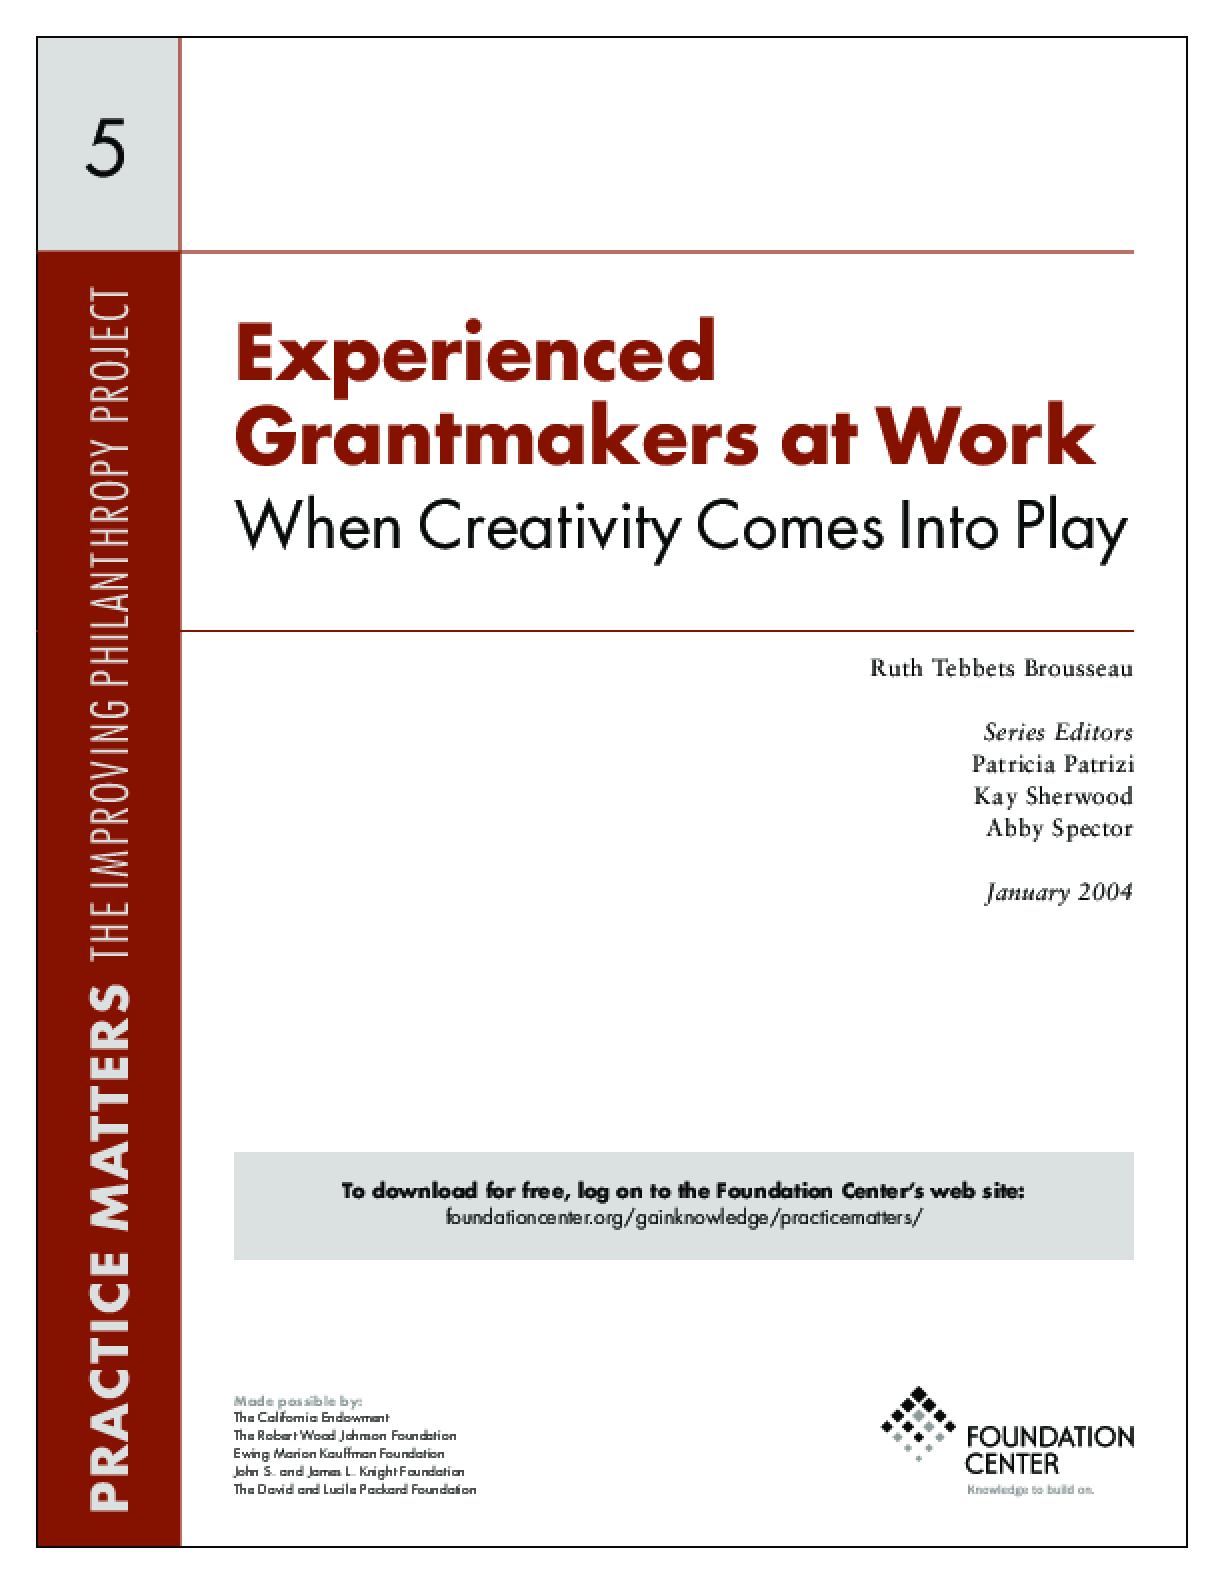 Experienced Grantmakers at Work: When Creativity Comes Into Play - Executive Summary